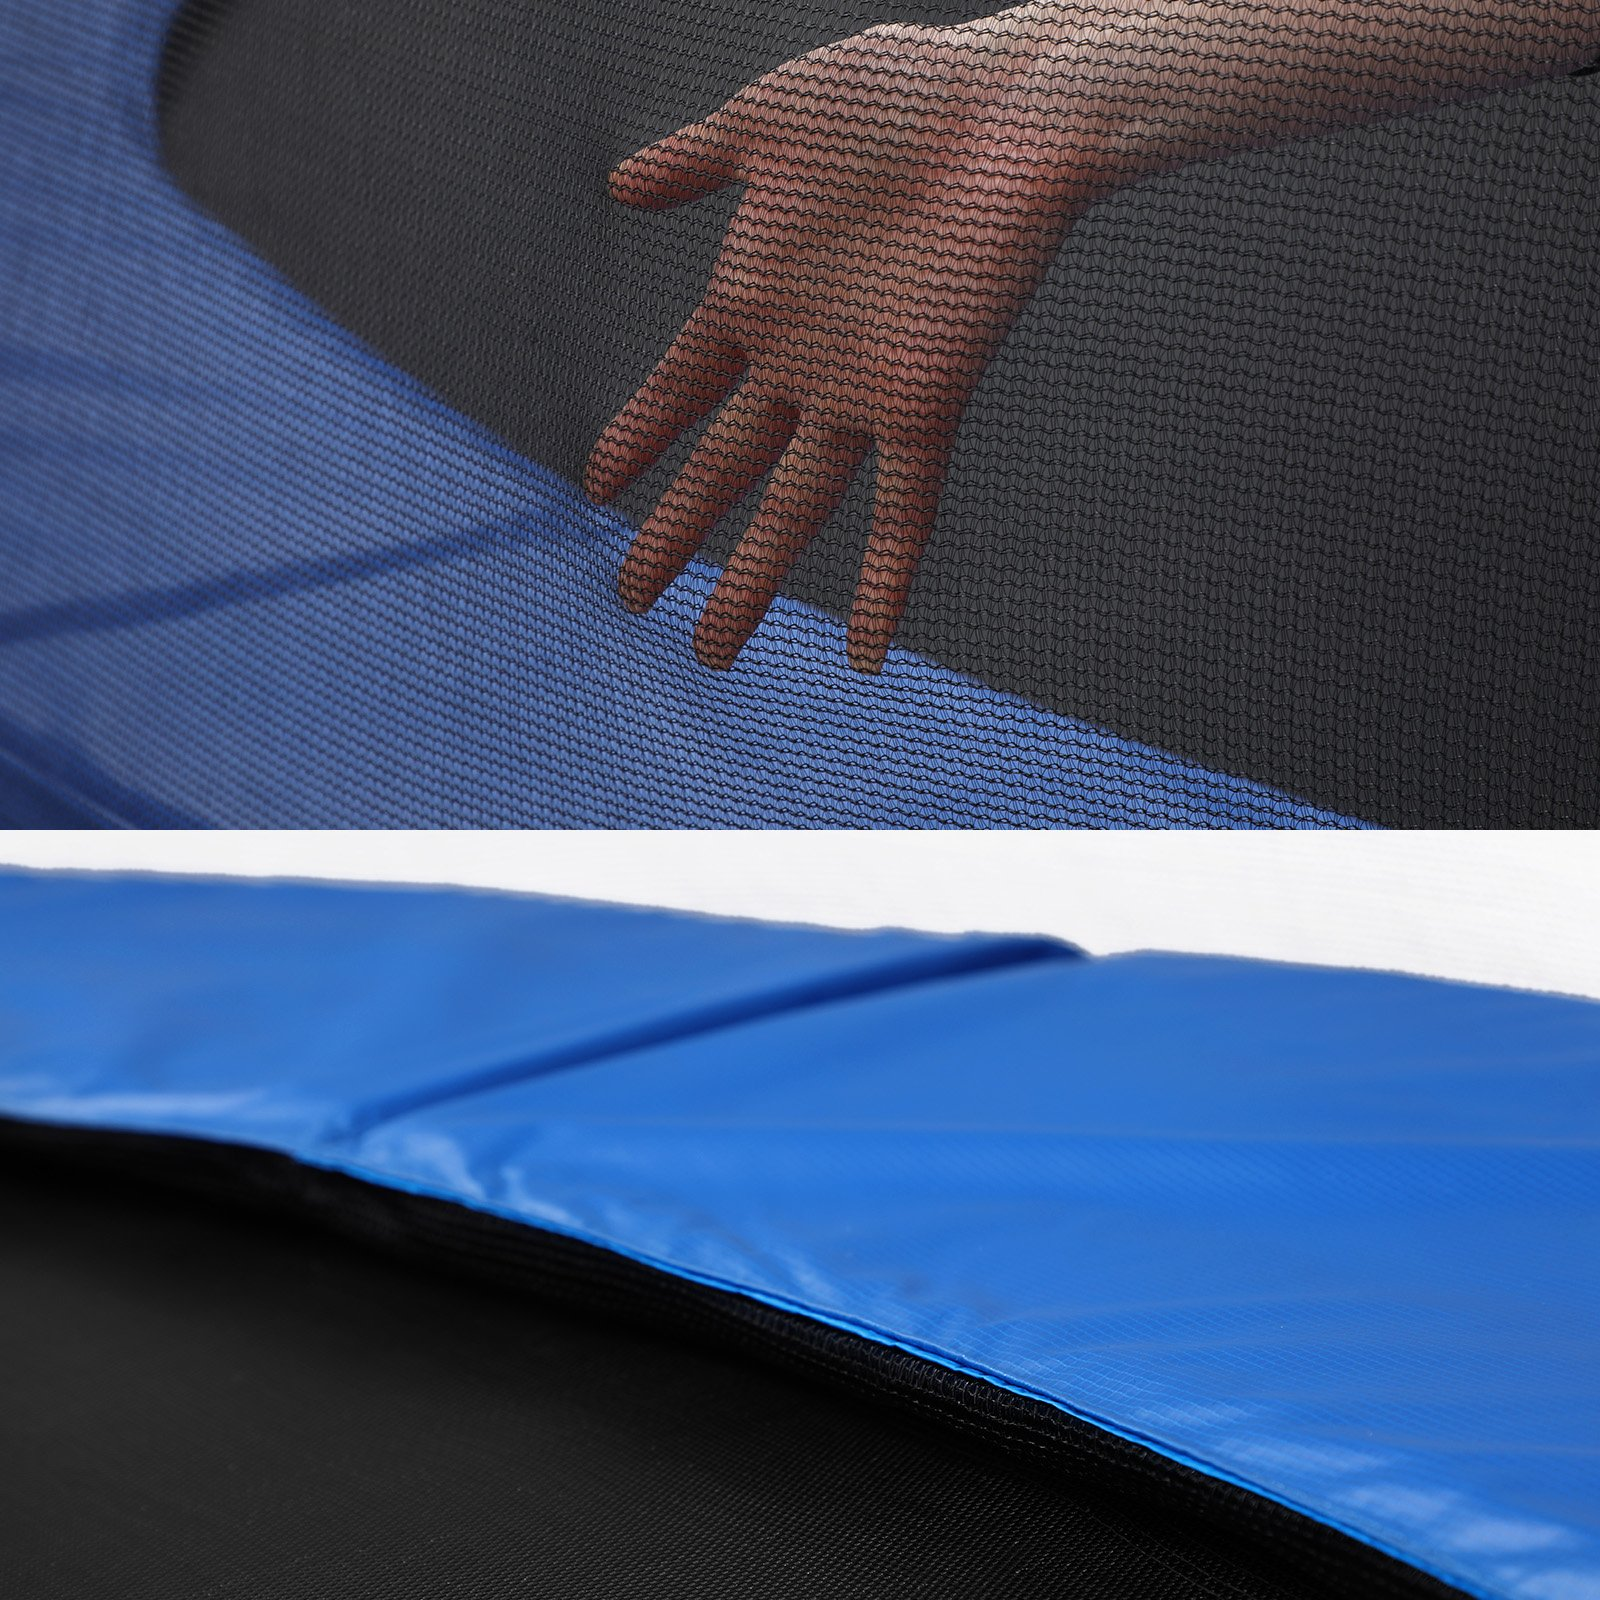 SONGMICS Outdoor Trampoline 12-Feet for Kids with Enclosure Net Jumping Mat and Spring Cover Padding TÜV Rheinland Certificated According to ASTM and GS Standard Blue USTR12FT by SONGMICS (Image #8)